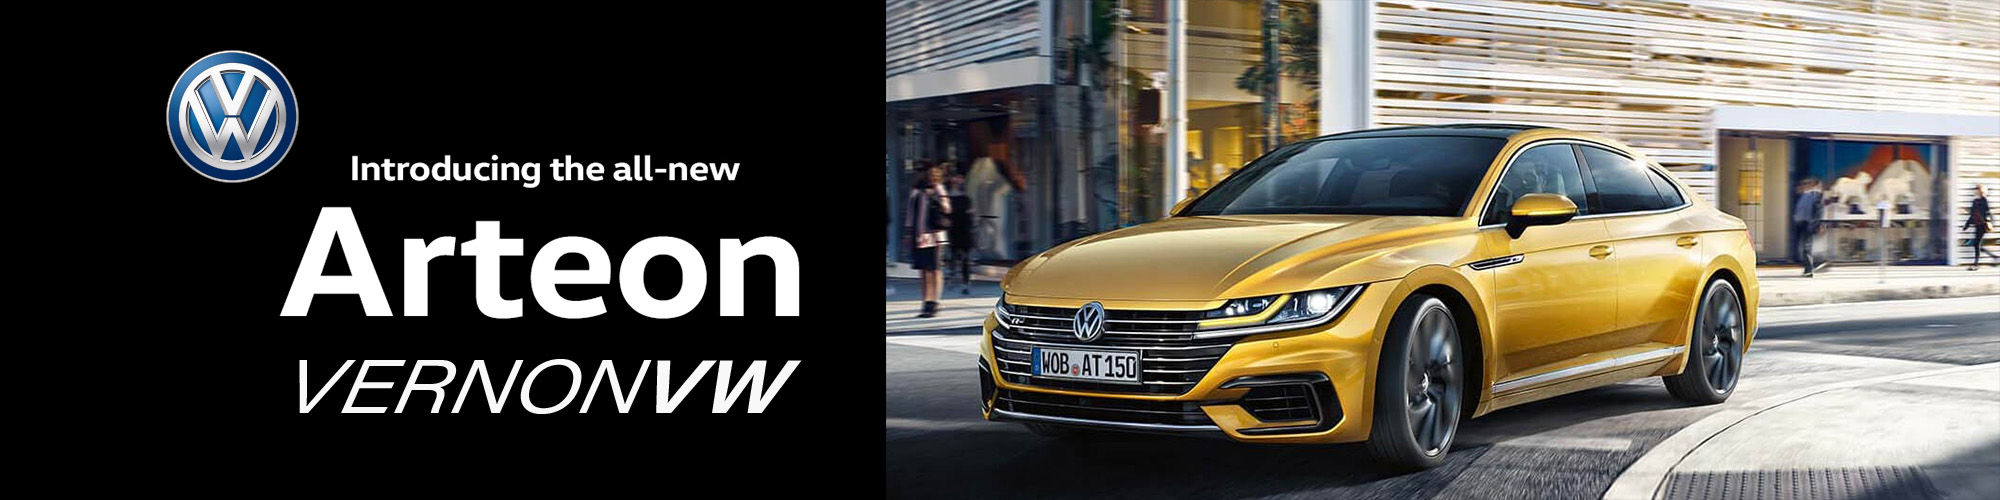 Vernon Volkswagen - New and used car loans Vernon BC - arteon